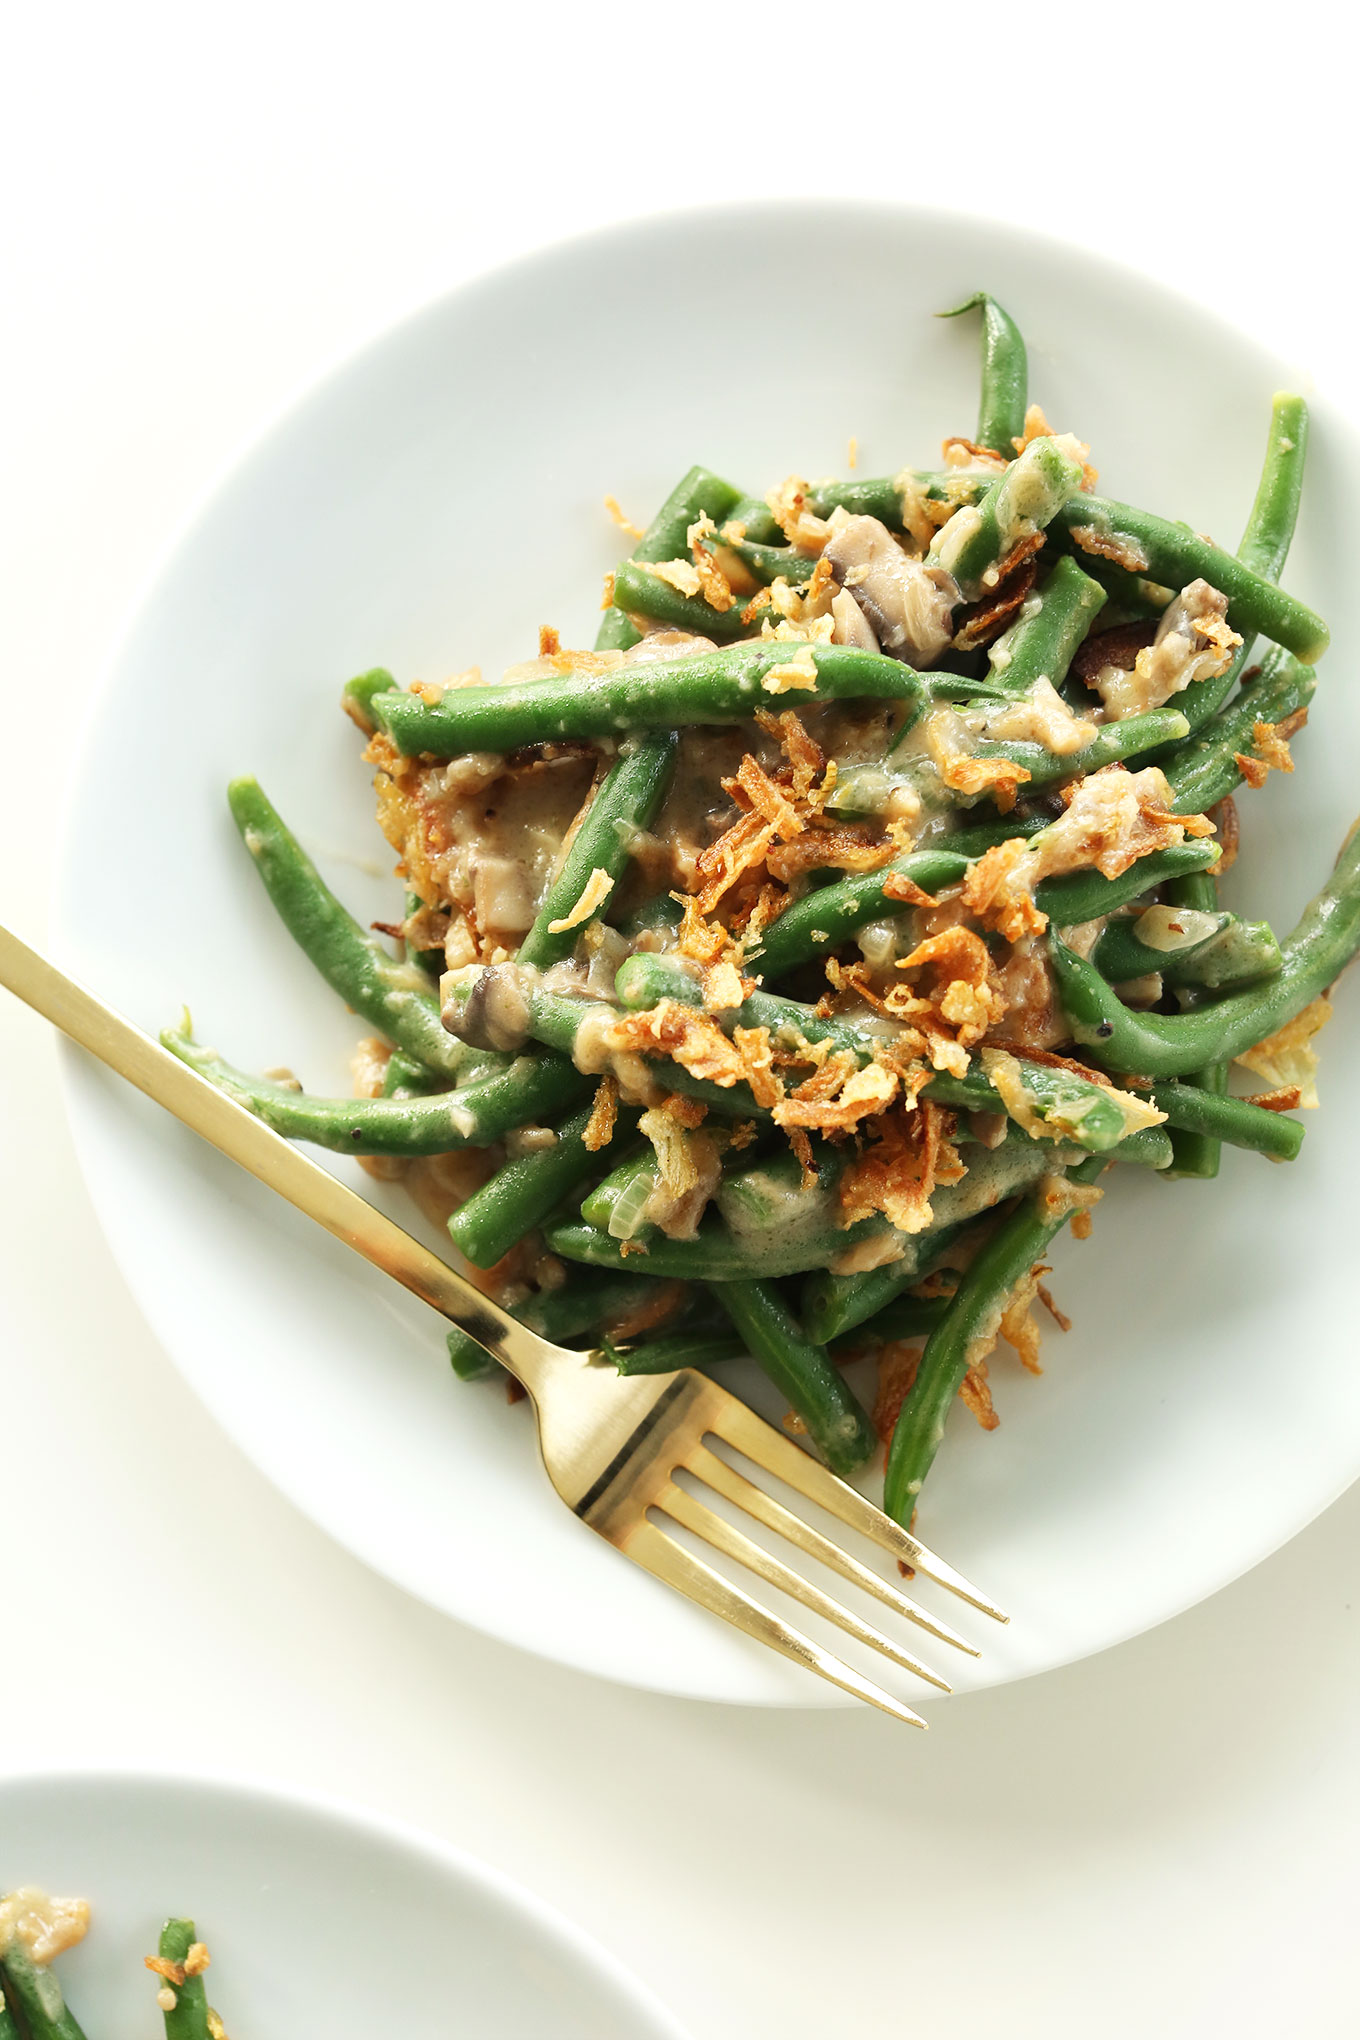 Plate of the Easiest Green Bean Casserole recipe